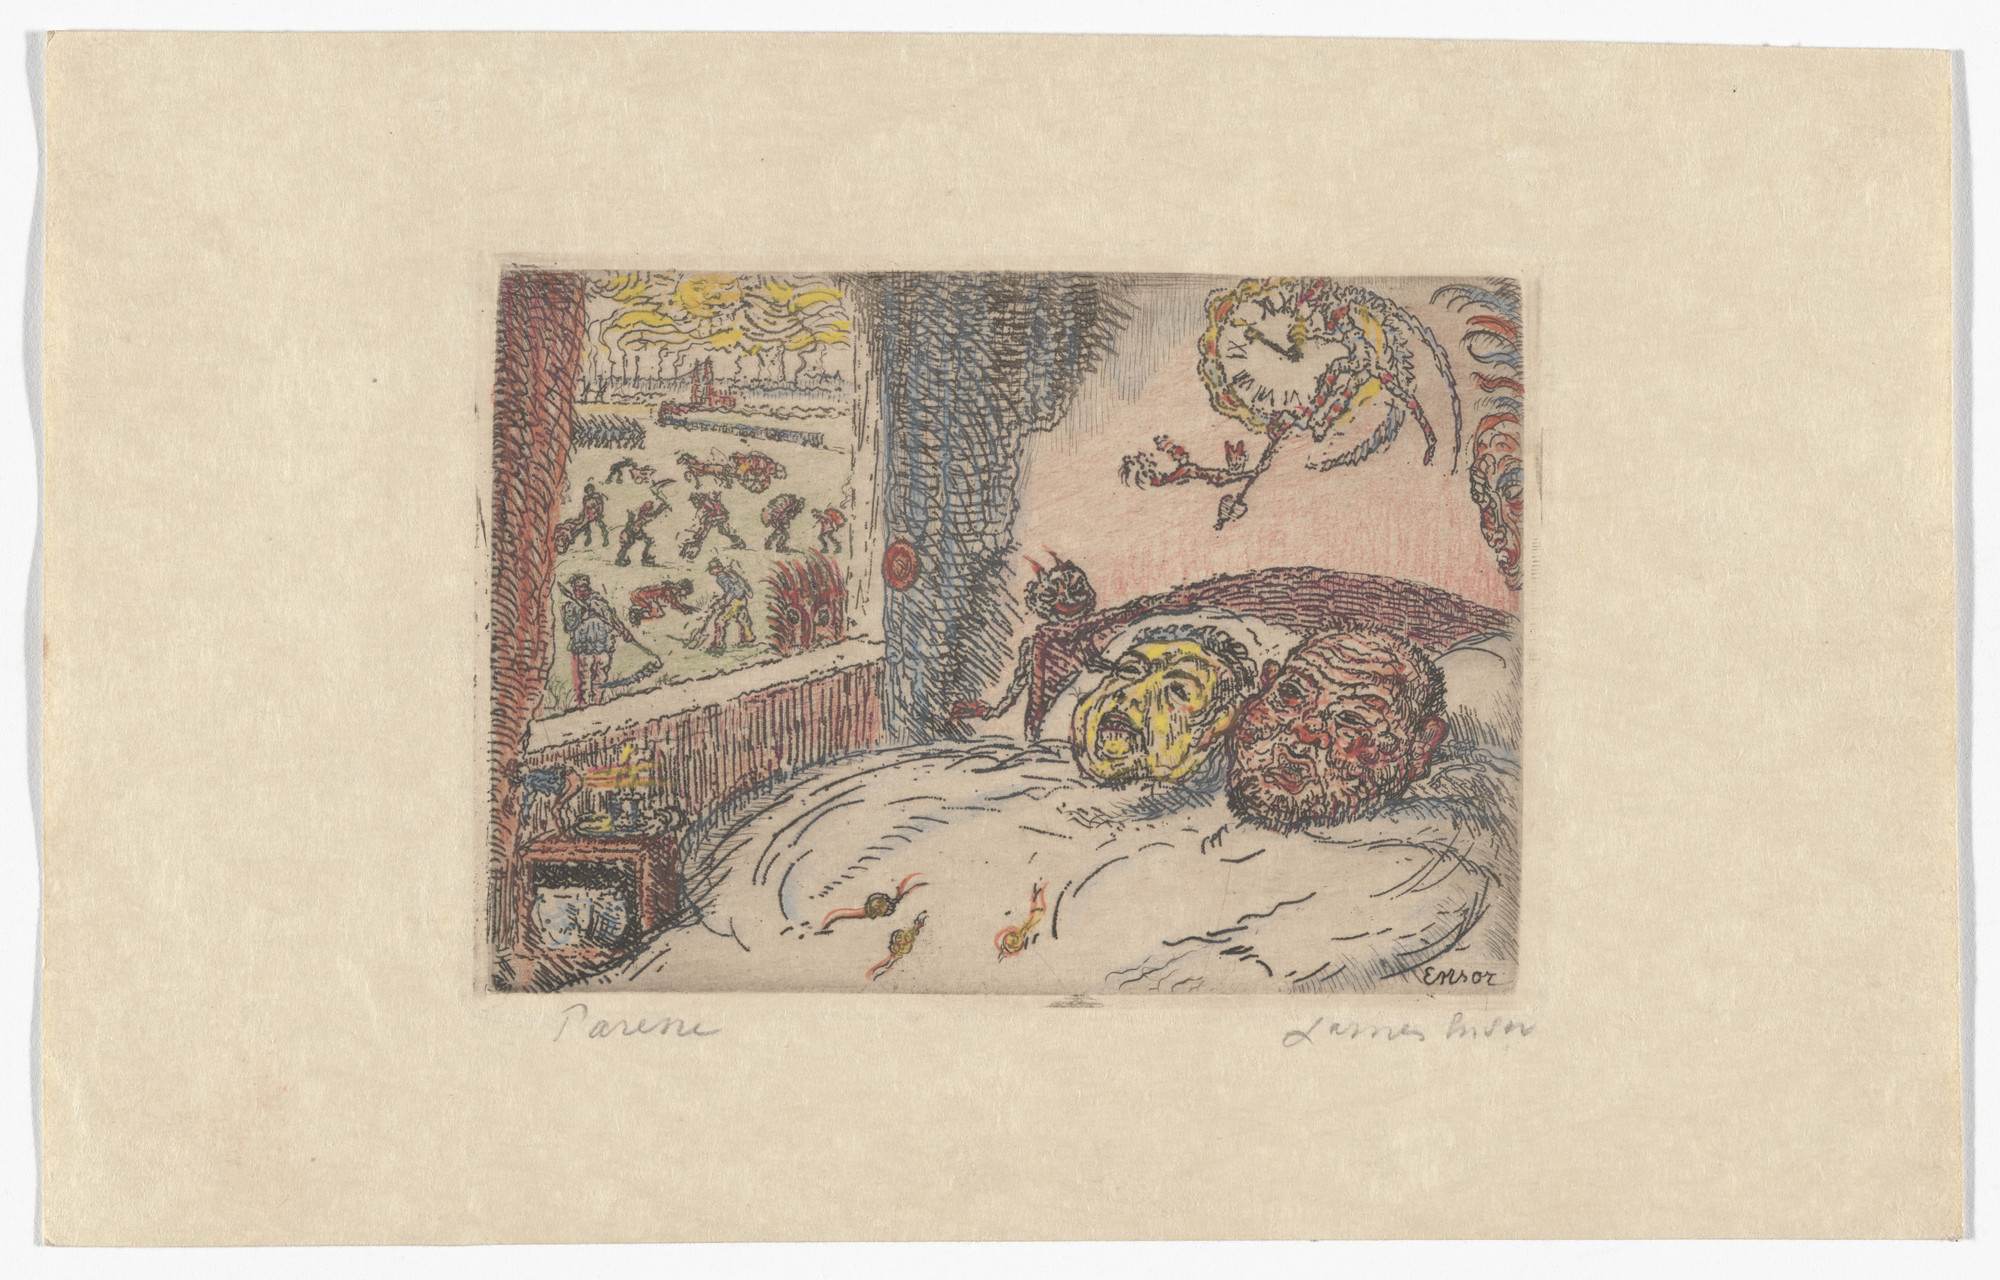 James Ensor. Sloth (La Paresse) from The Deadly Sins (Les Péchés capitaux). 1902, published 1904